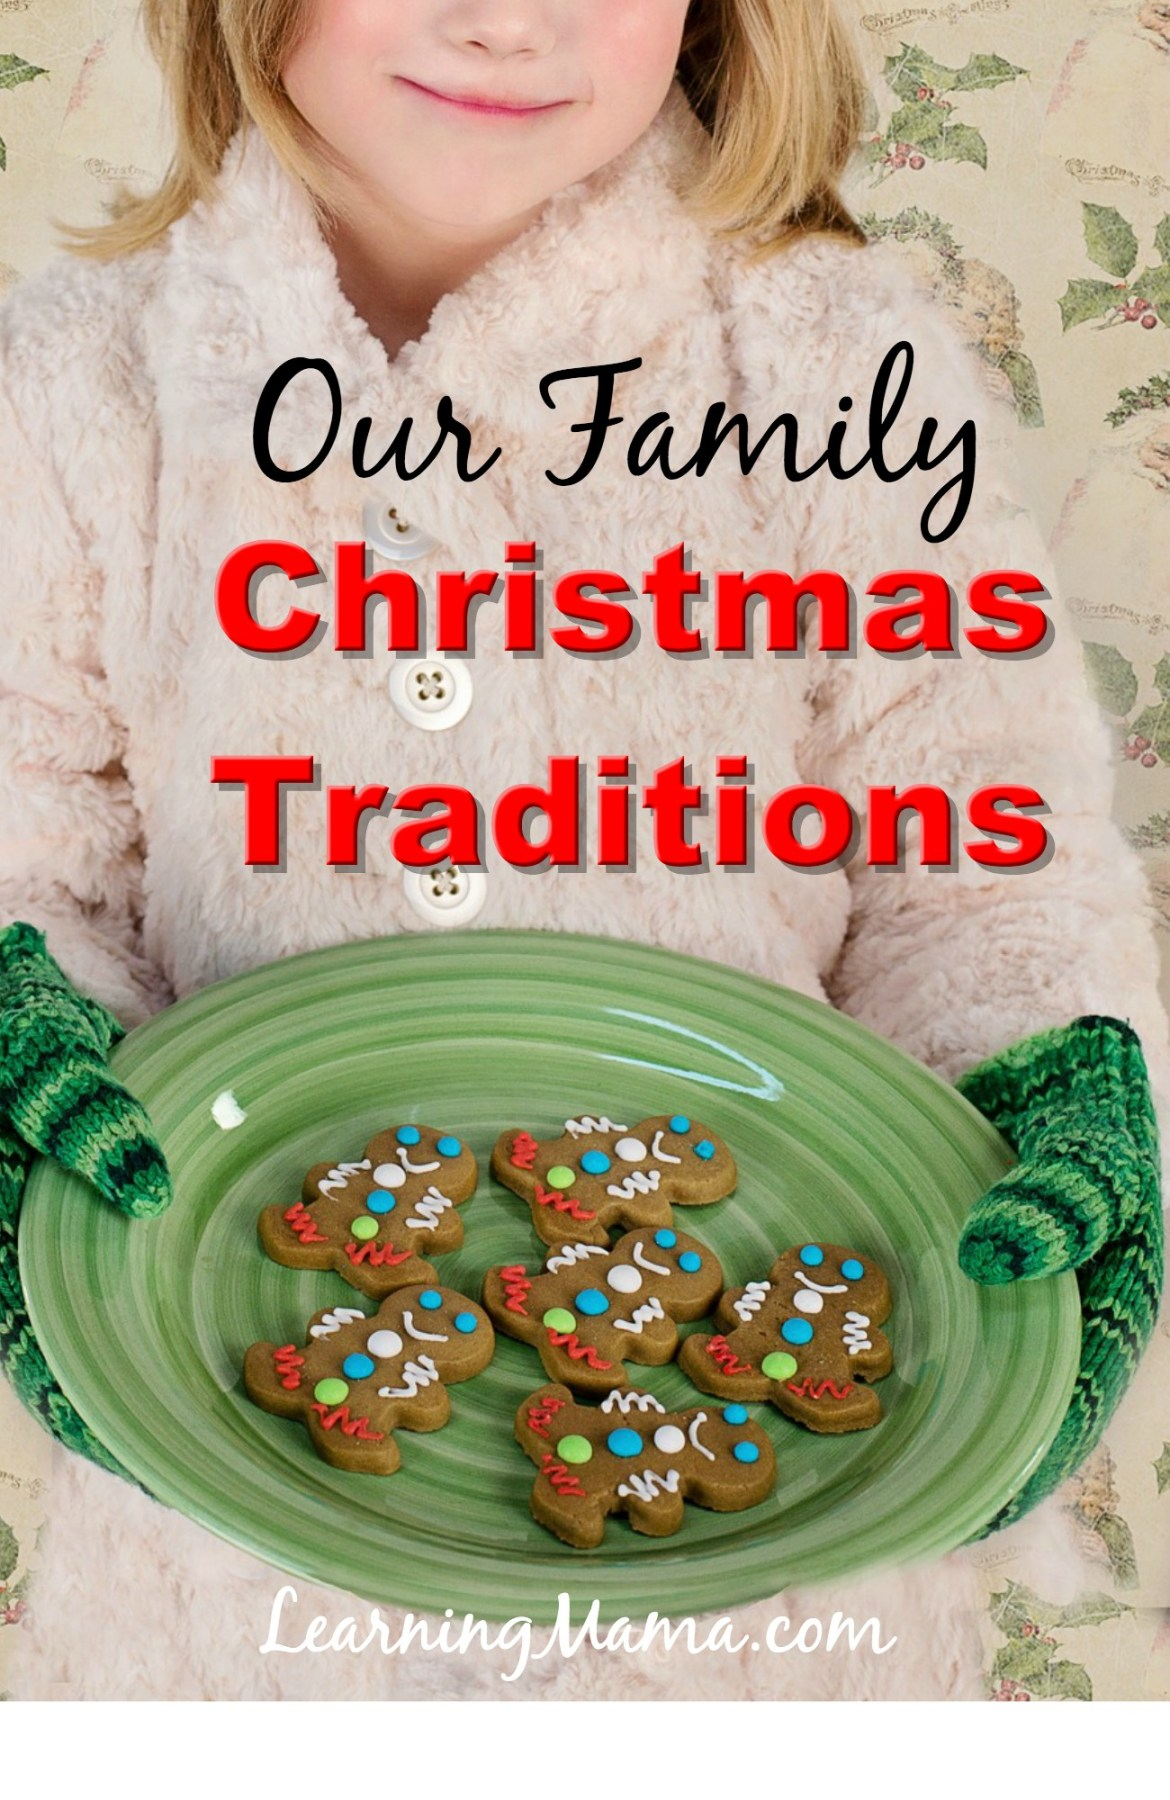 Our Family Christmas Traditions - 3 Christmas traditions that give me the warm & fuzzies!